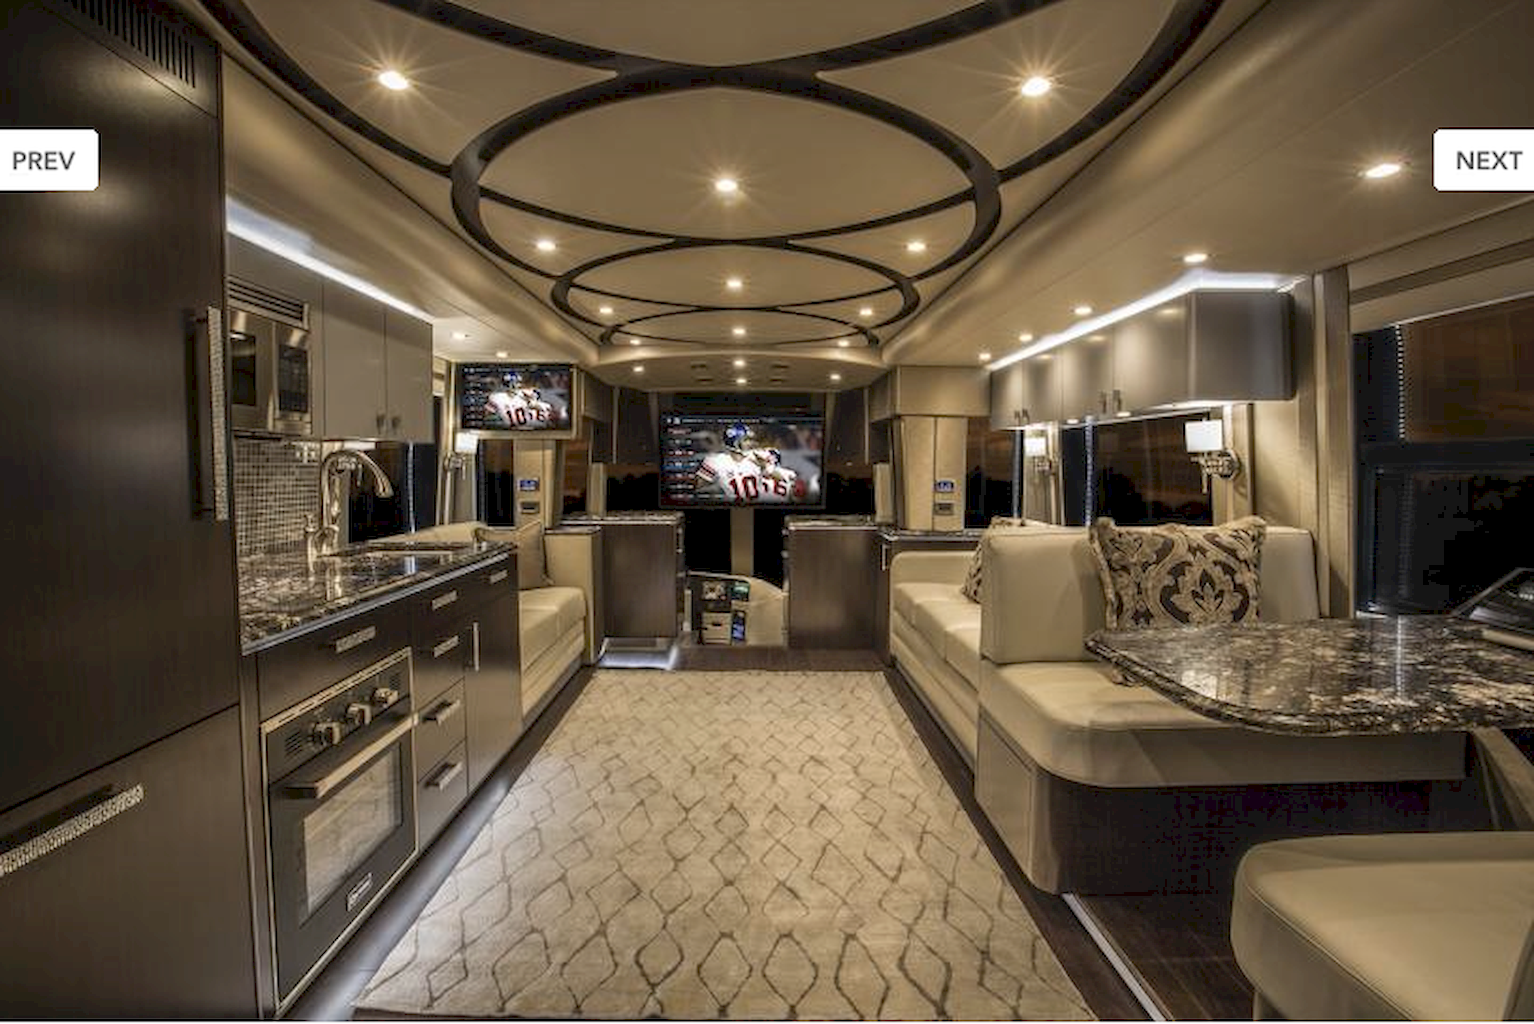 90 modern rv remodel travel trailers ideas (64) - Roomadness com